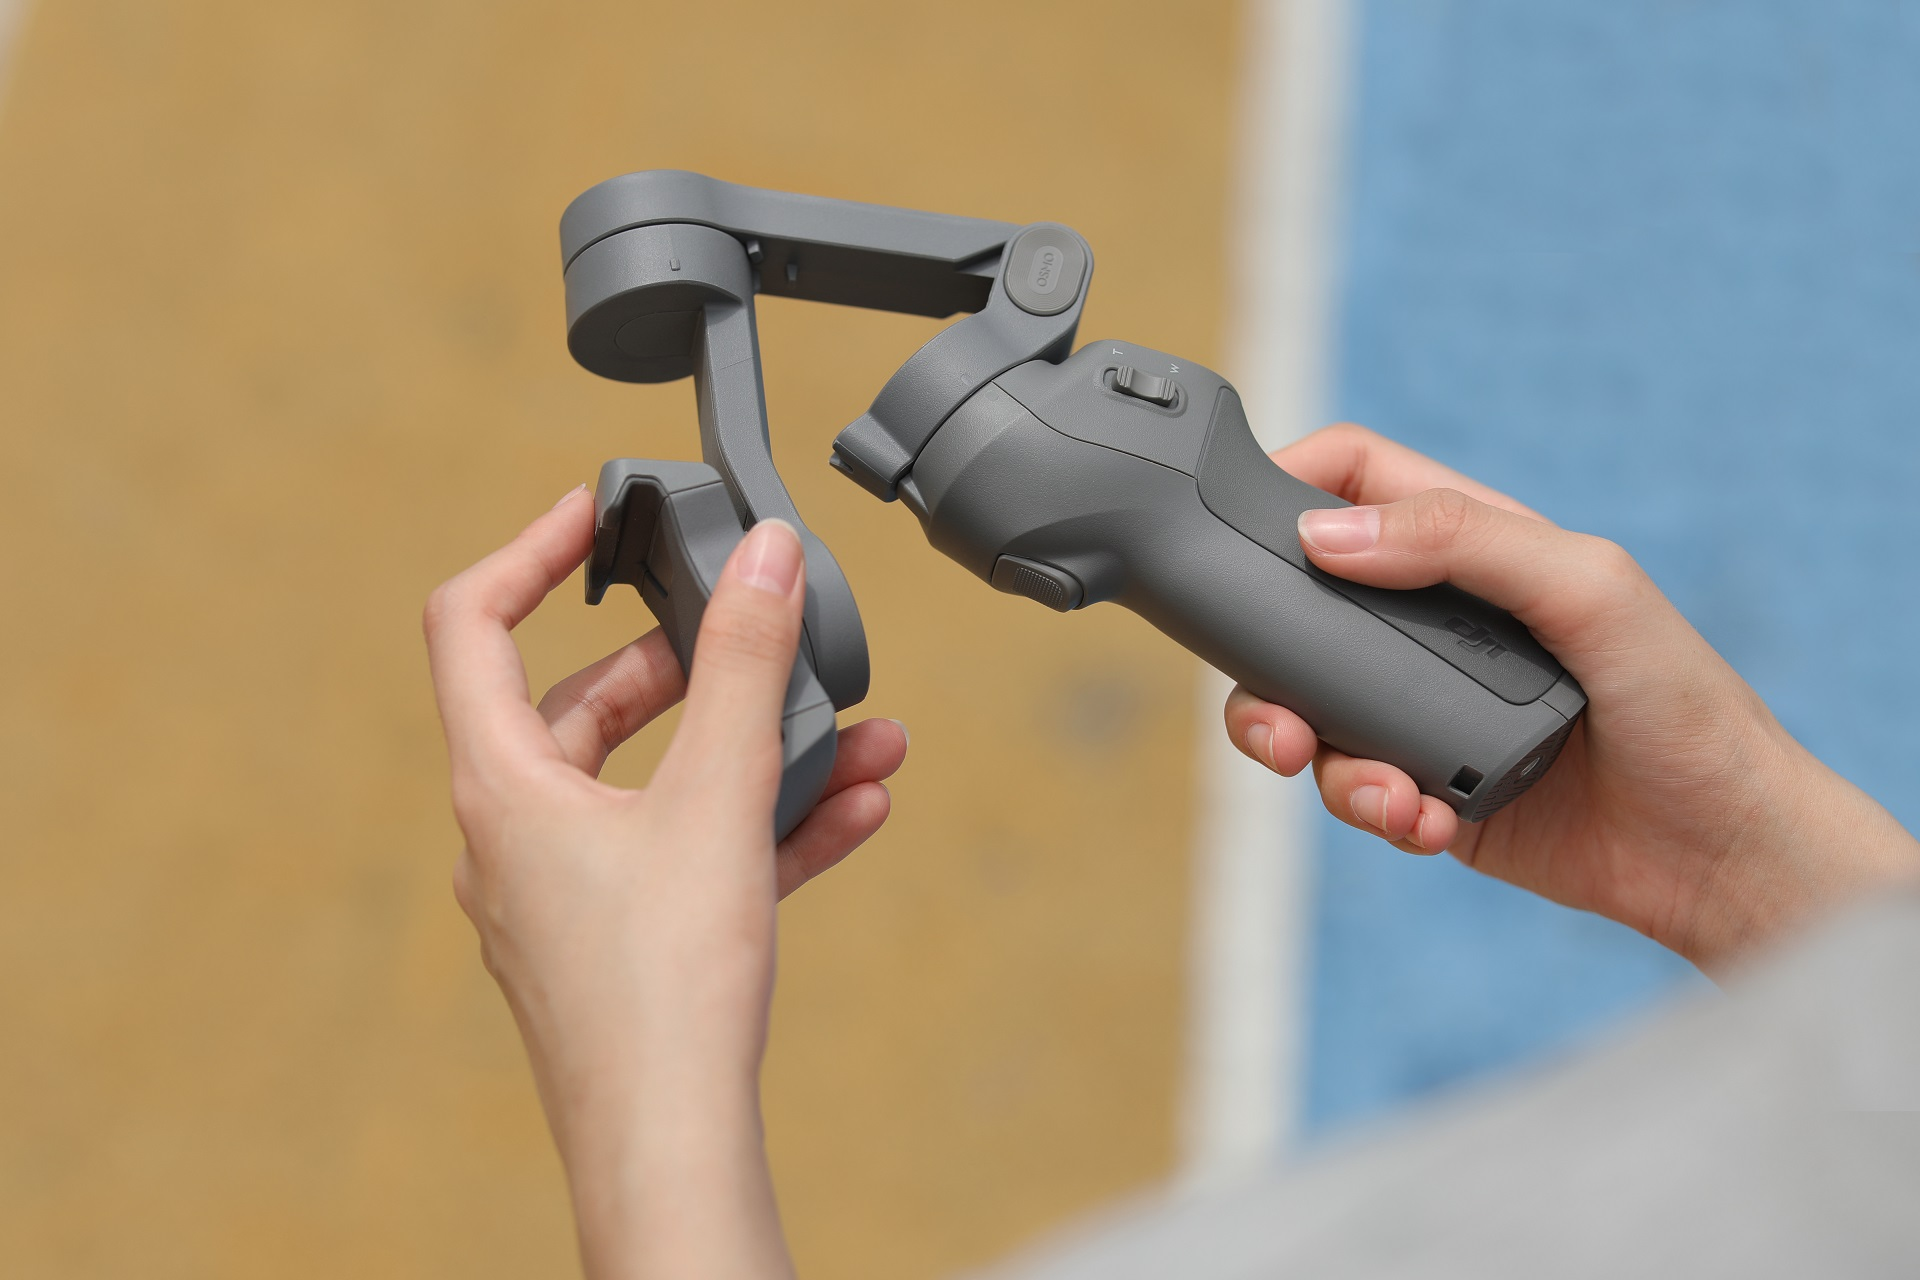 DJI's foldable Osmo Mobile 3 could be the best smartphone gimbal